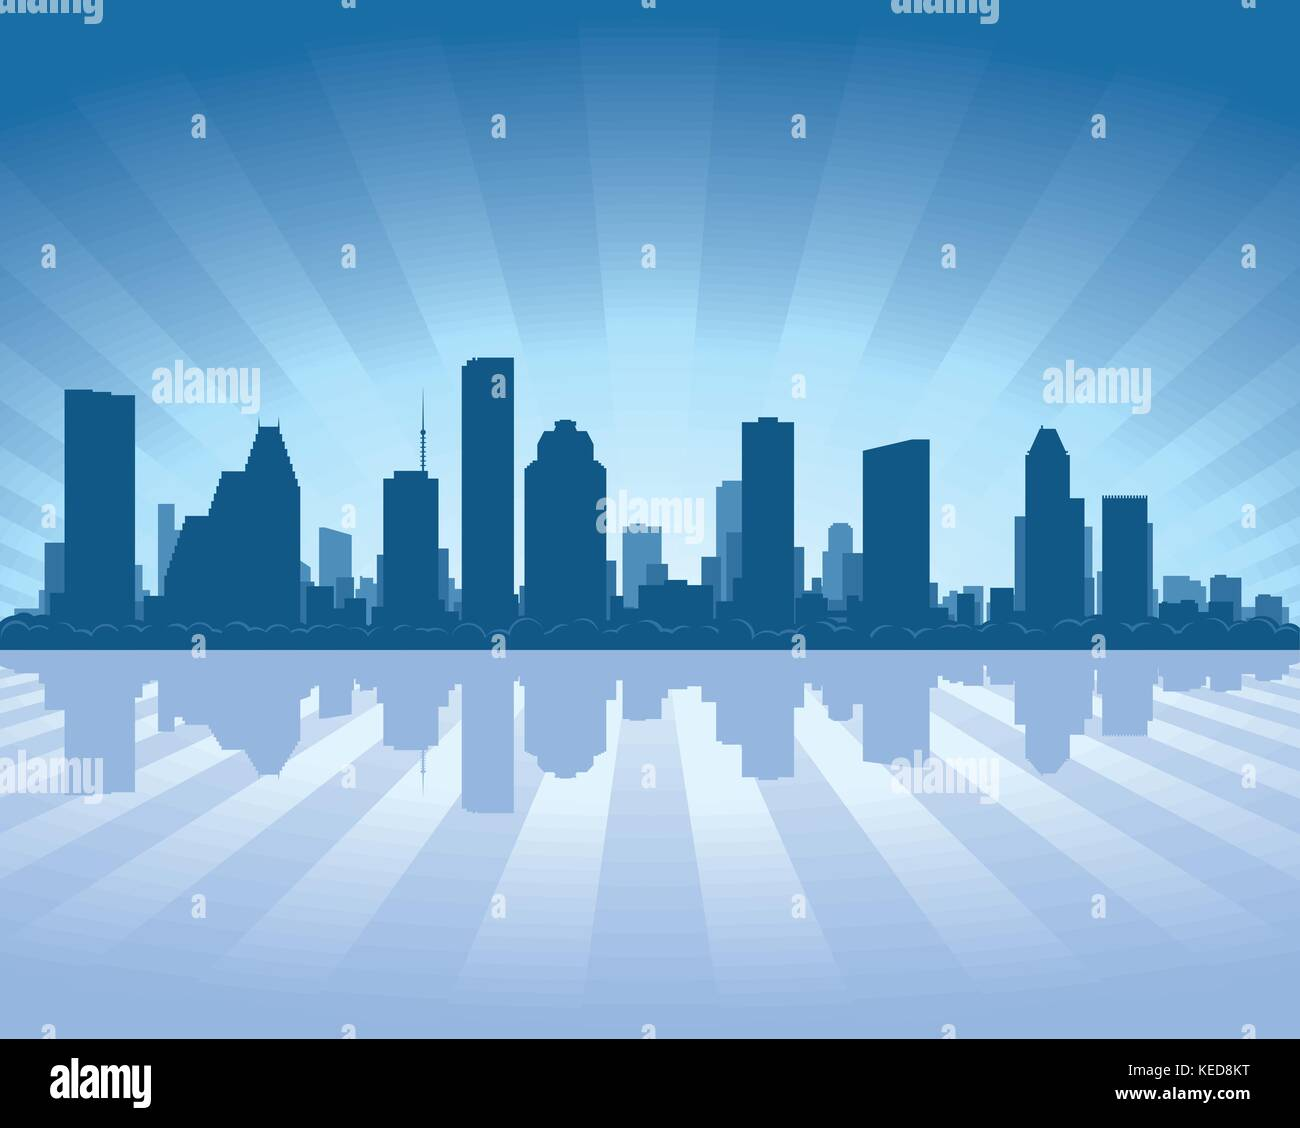 Houston skyline with reflection in water - Stock Vector